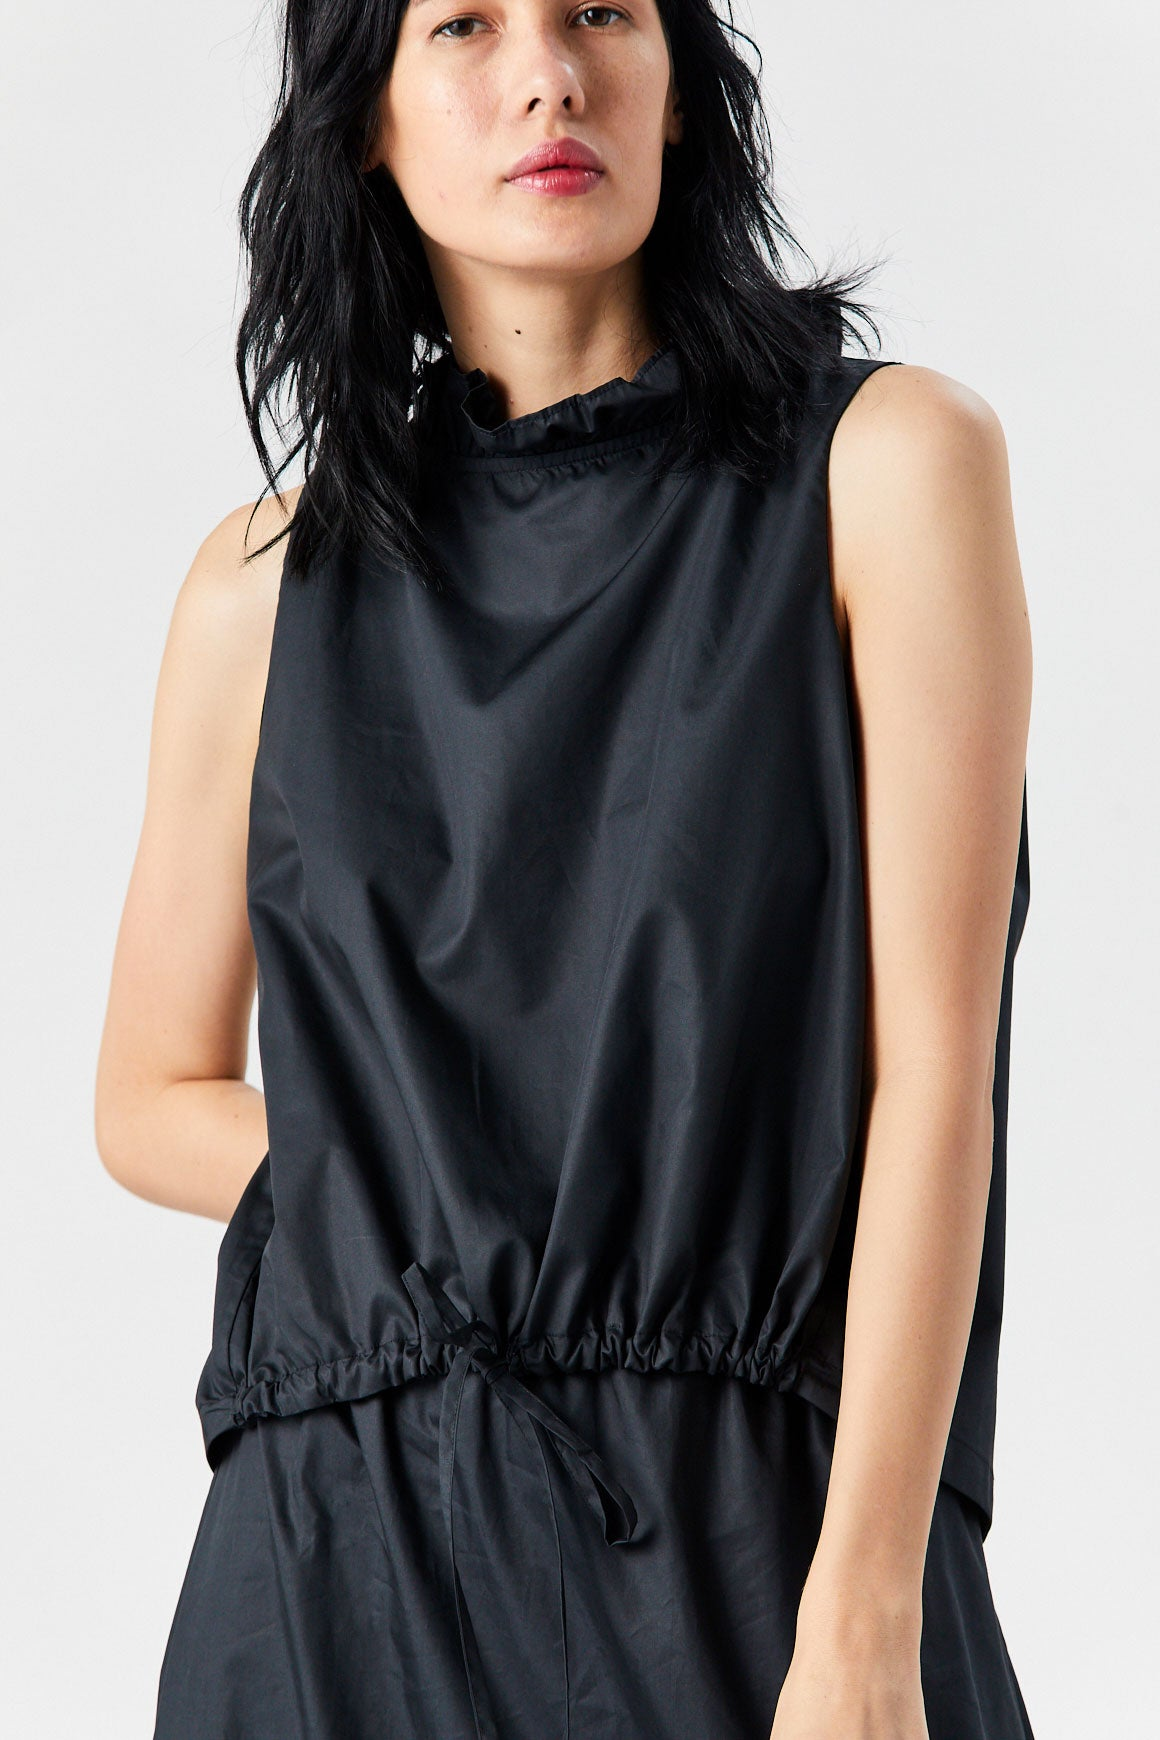 Atlantique Ascoli - Sleeveless Blouse, Black